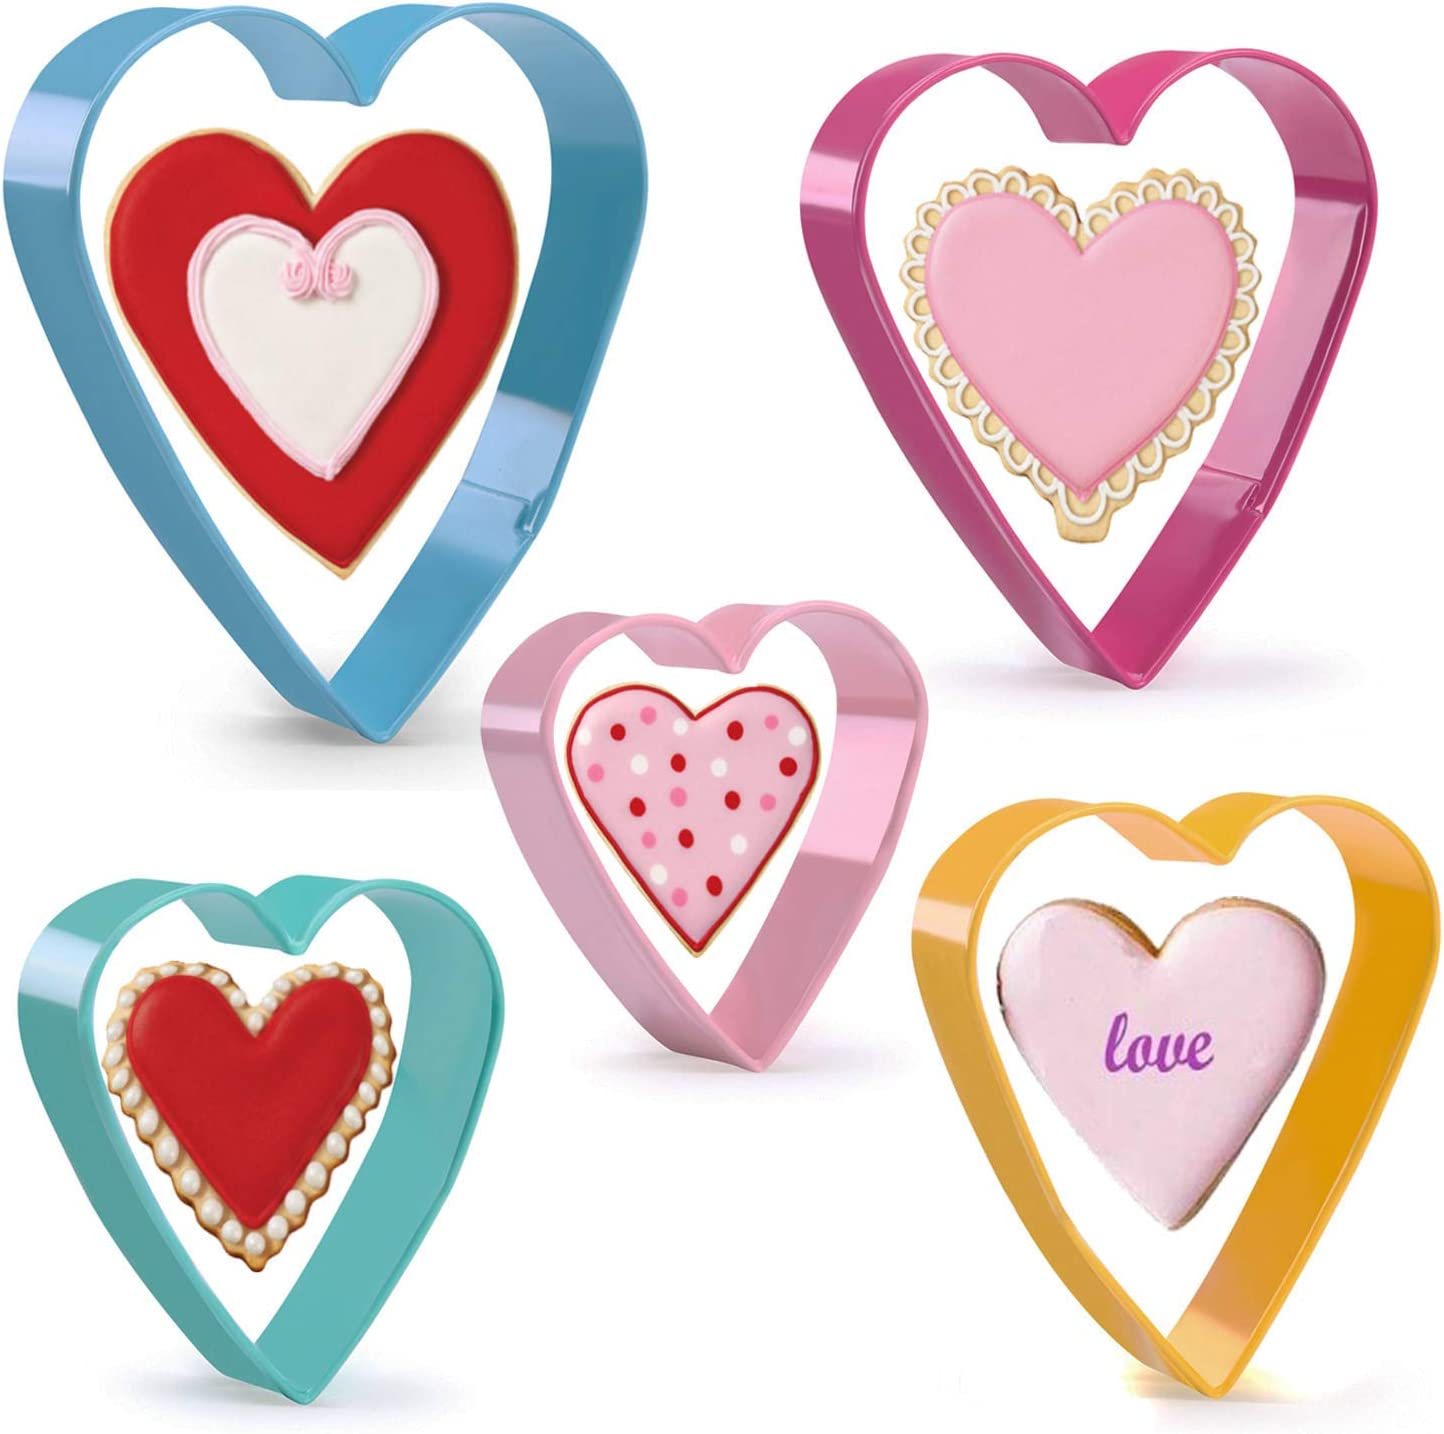 KAISHANE Valentine's Day Heart Cookie Cutters Set Stainless Steel Colorful (Pink Blue Yellow Green Rose red) Set of 5